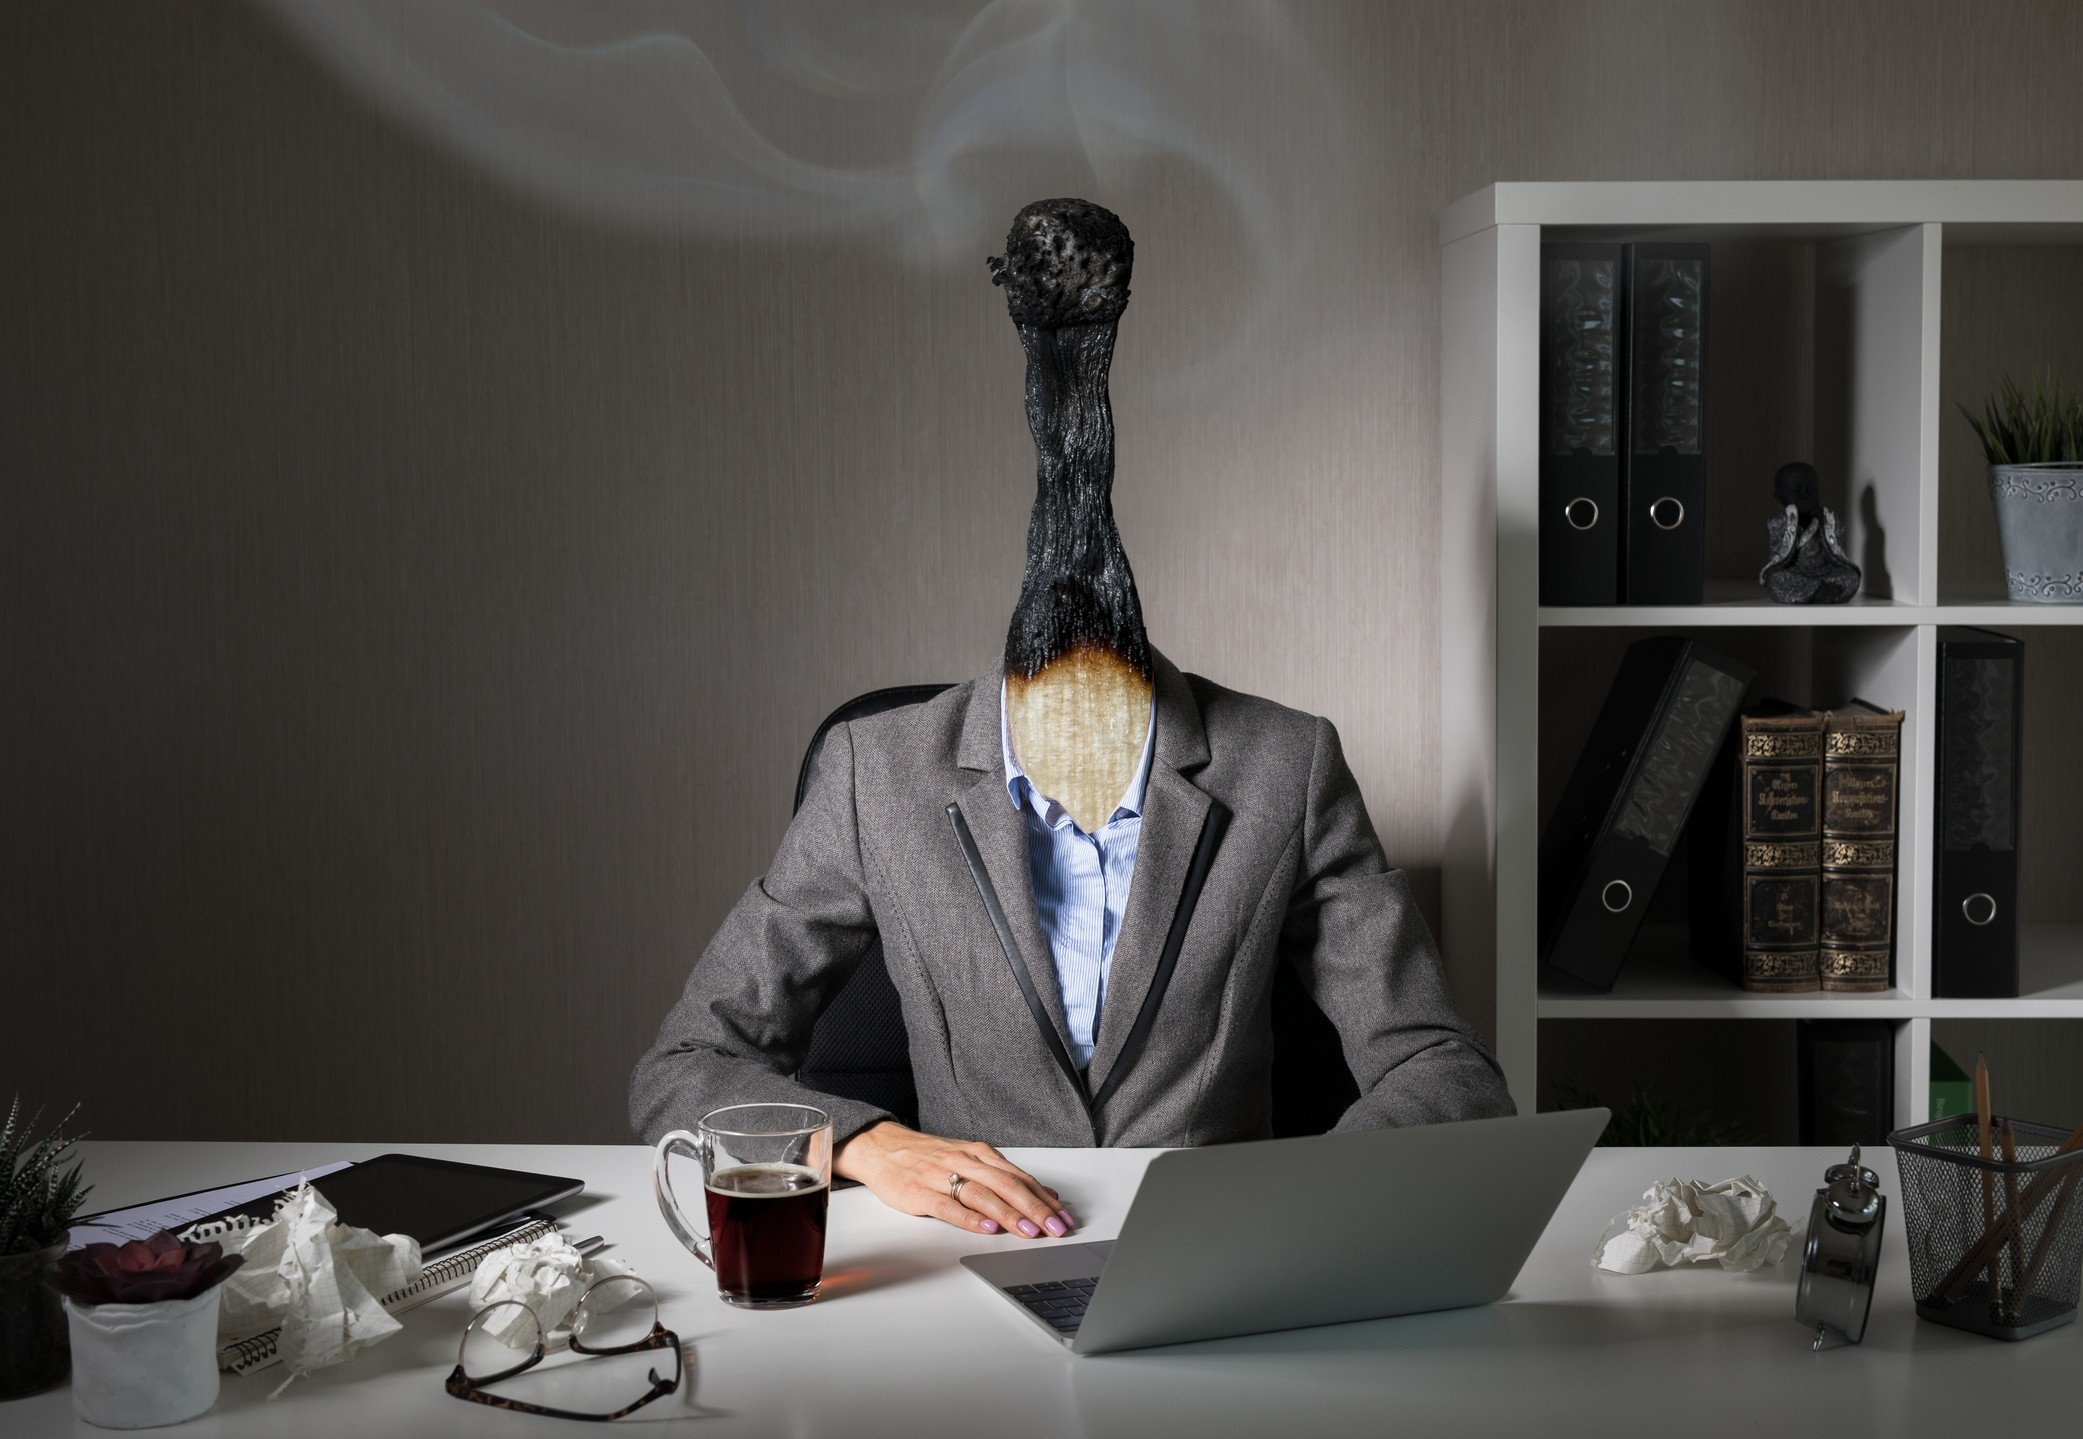 burnout syndrome at work